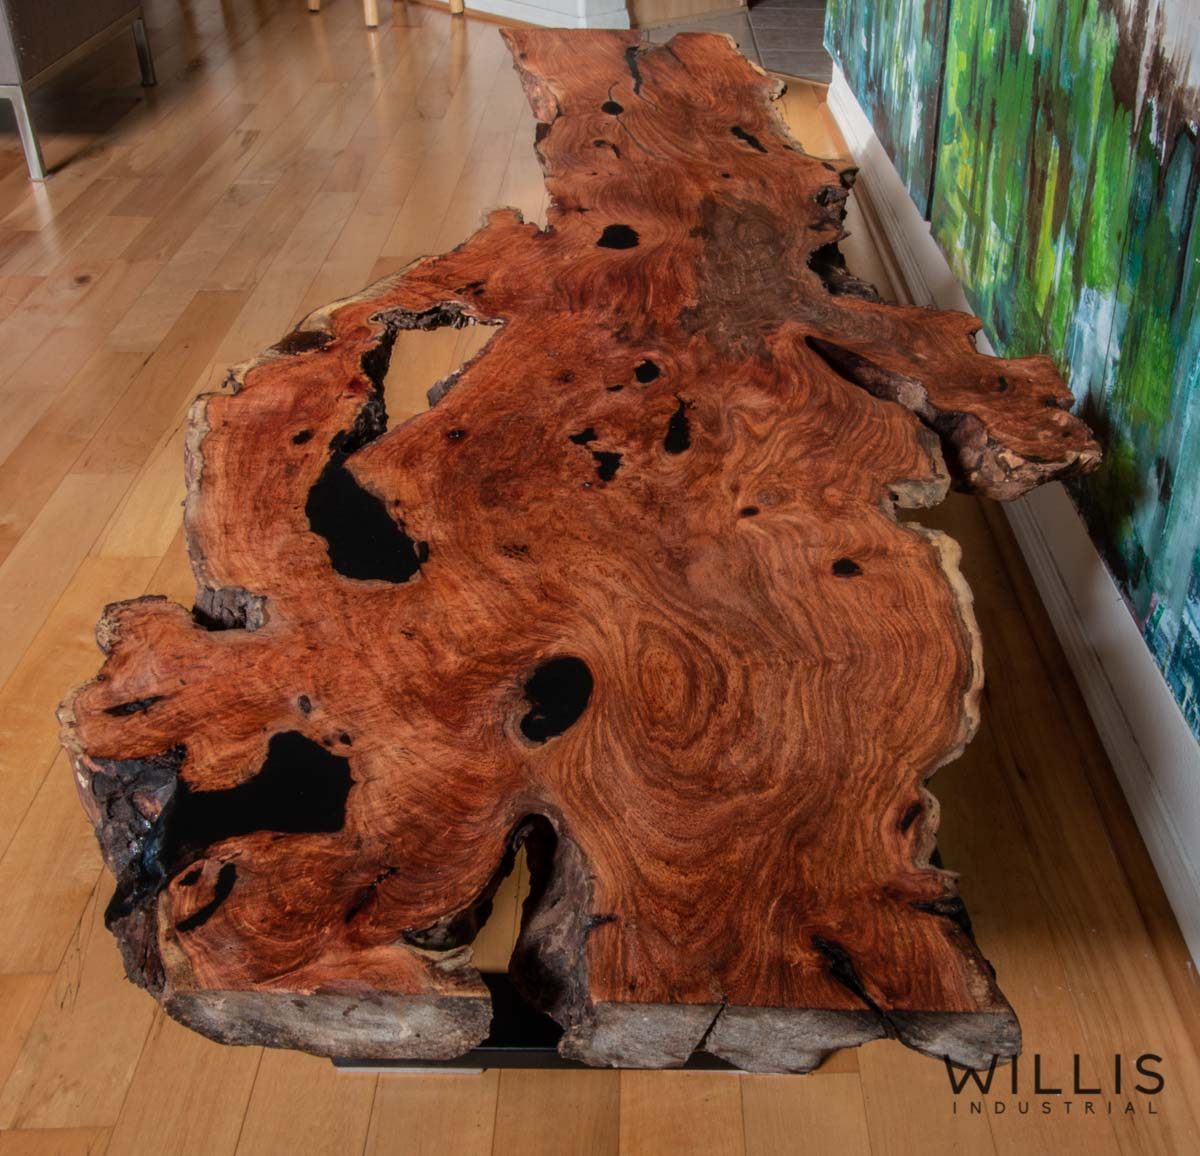 Willis Industrial Furniture | Rustic, Modern Furniture | Mesquite Slab with Black Epoxy & Black Painted Steel Cubed Frame